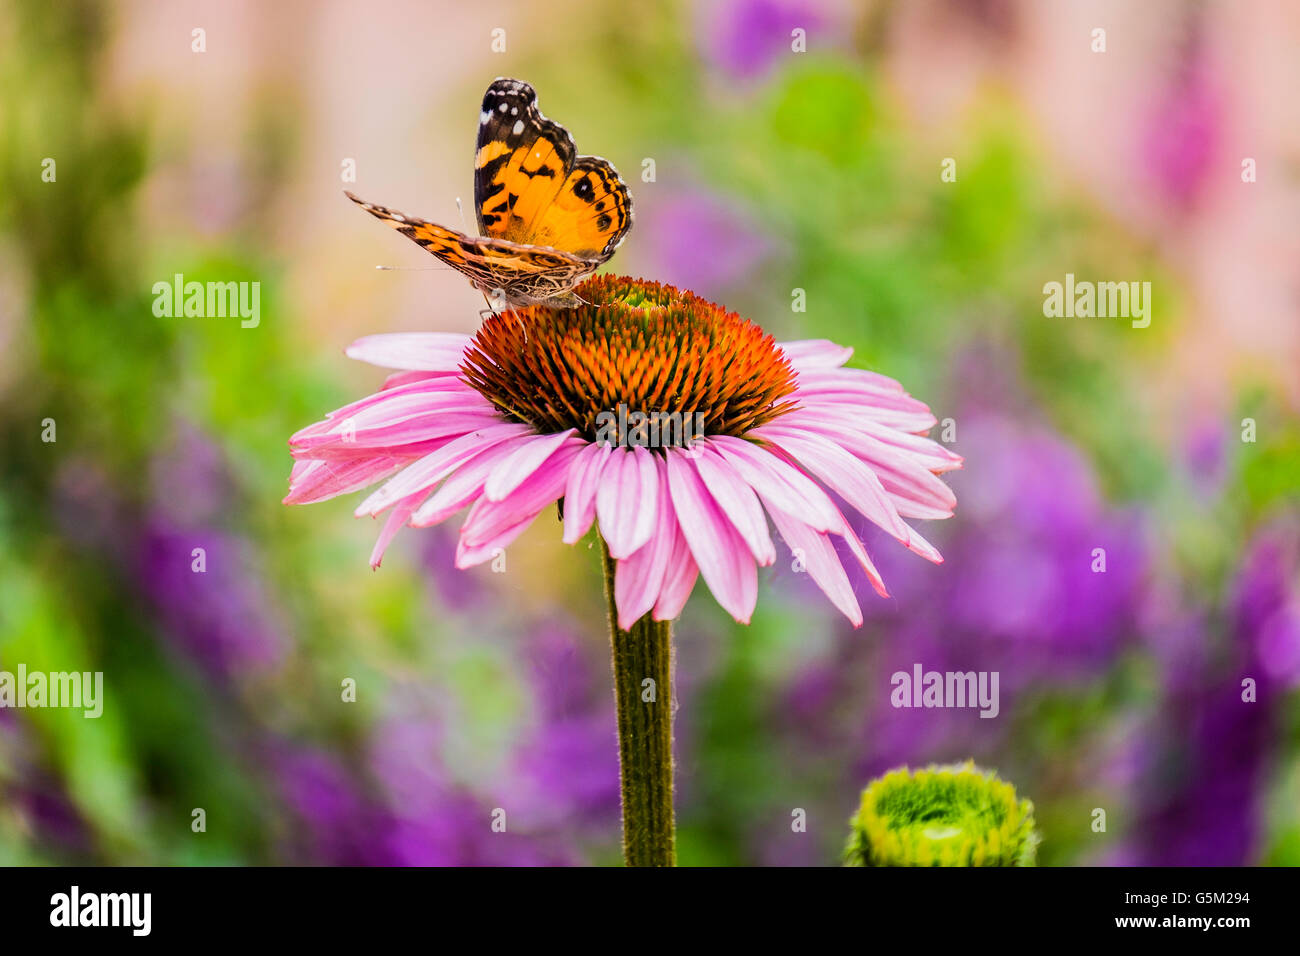 a-painted-lady-butterfly-vanessa-cardui-